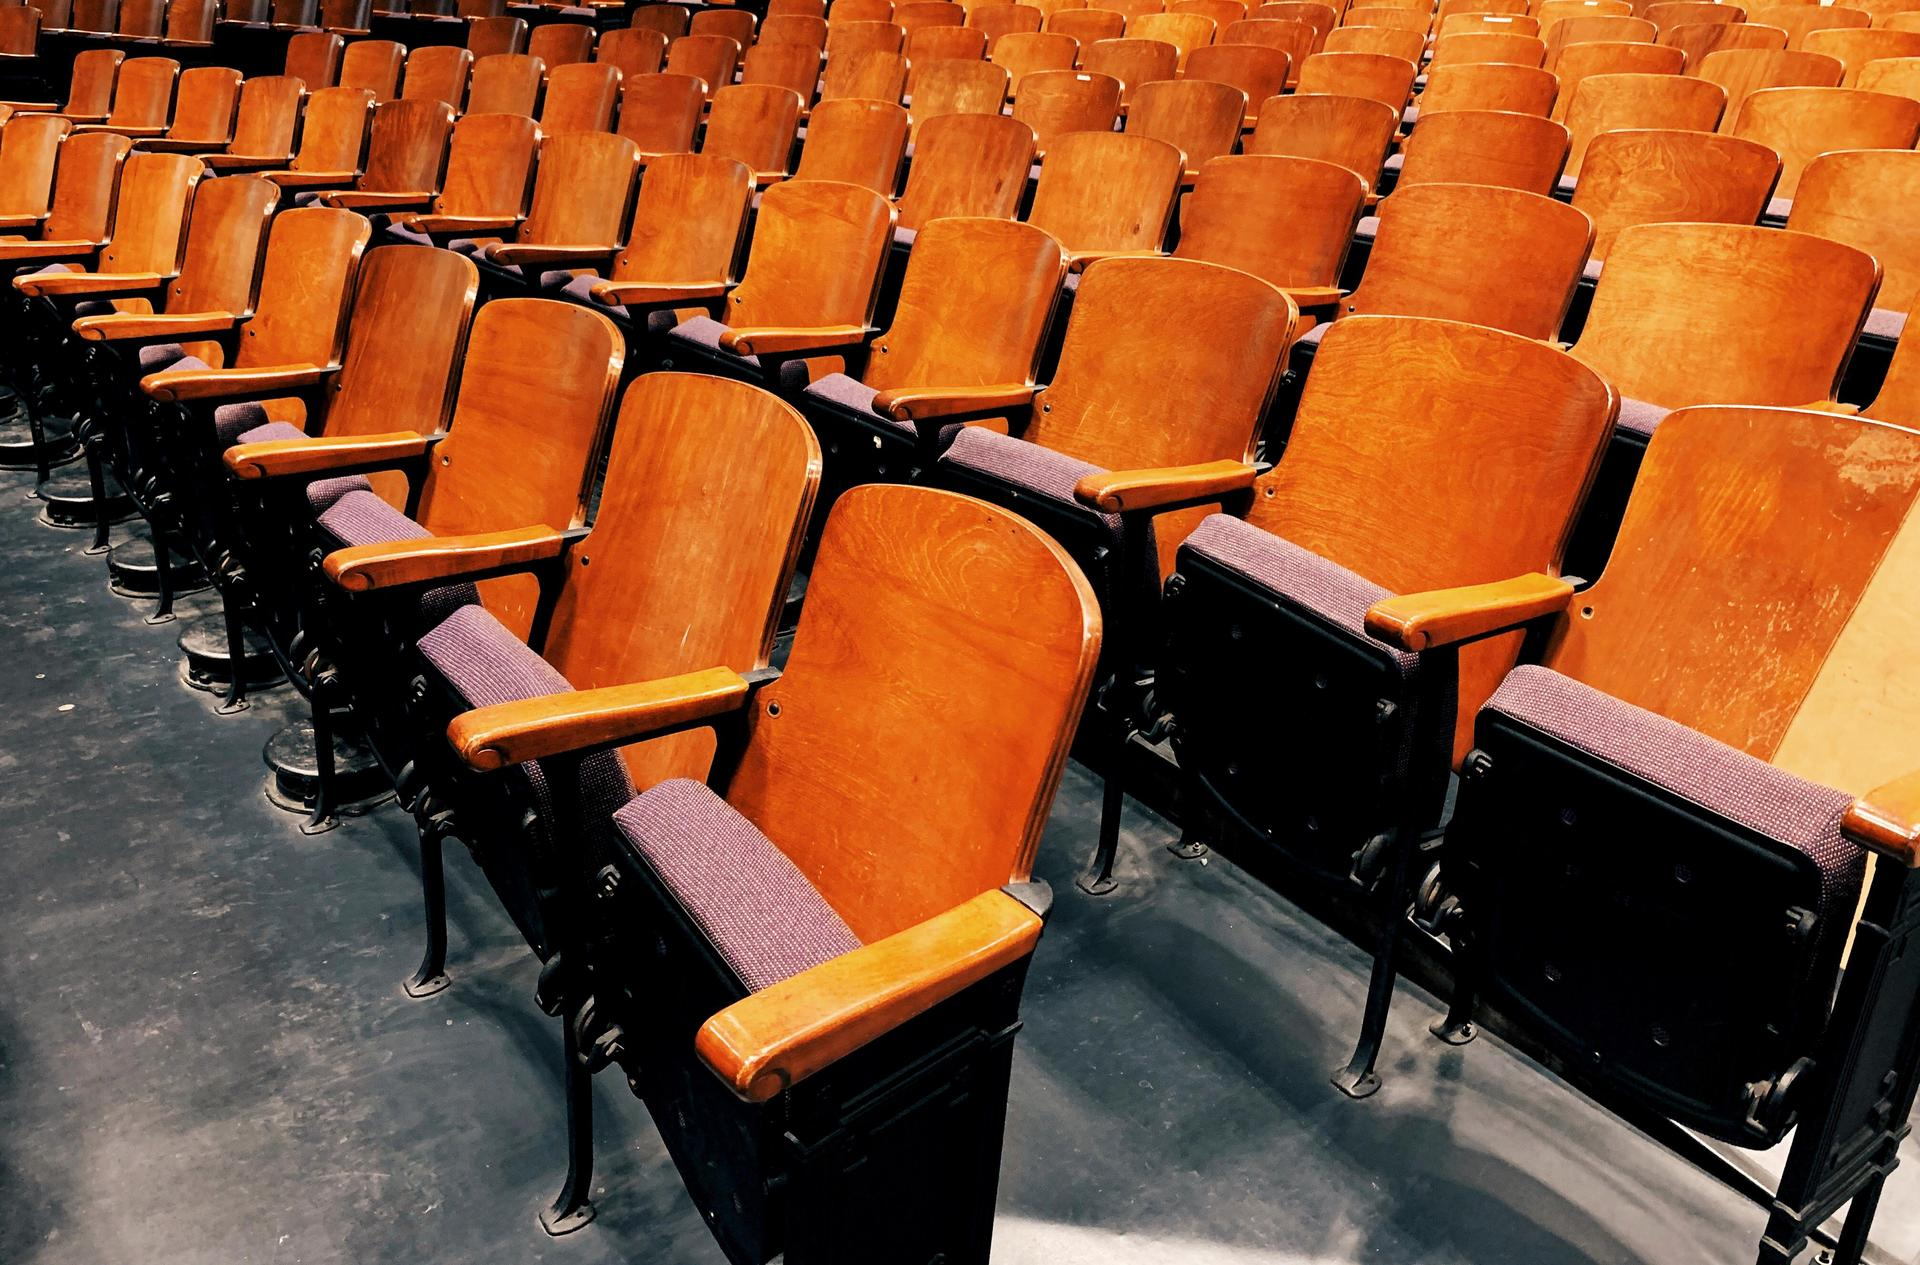 image of empty auditorium theatre seats